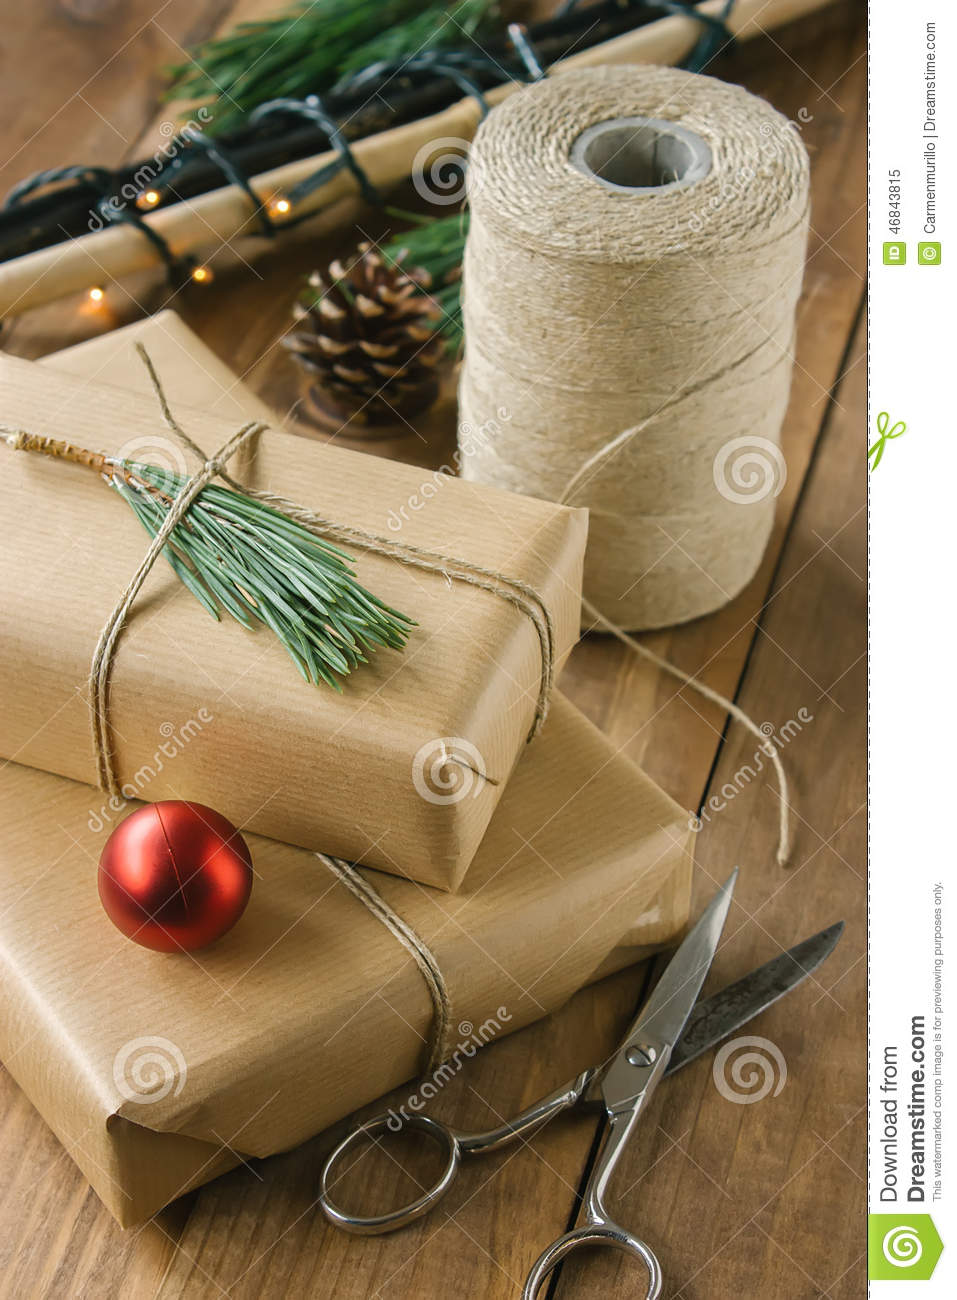 Rustic Christmas Gifts On Wooden Background Stock Image - Image of ...